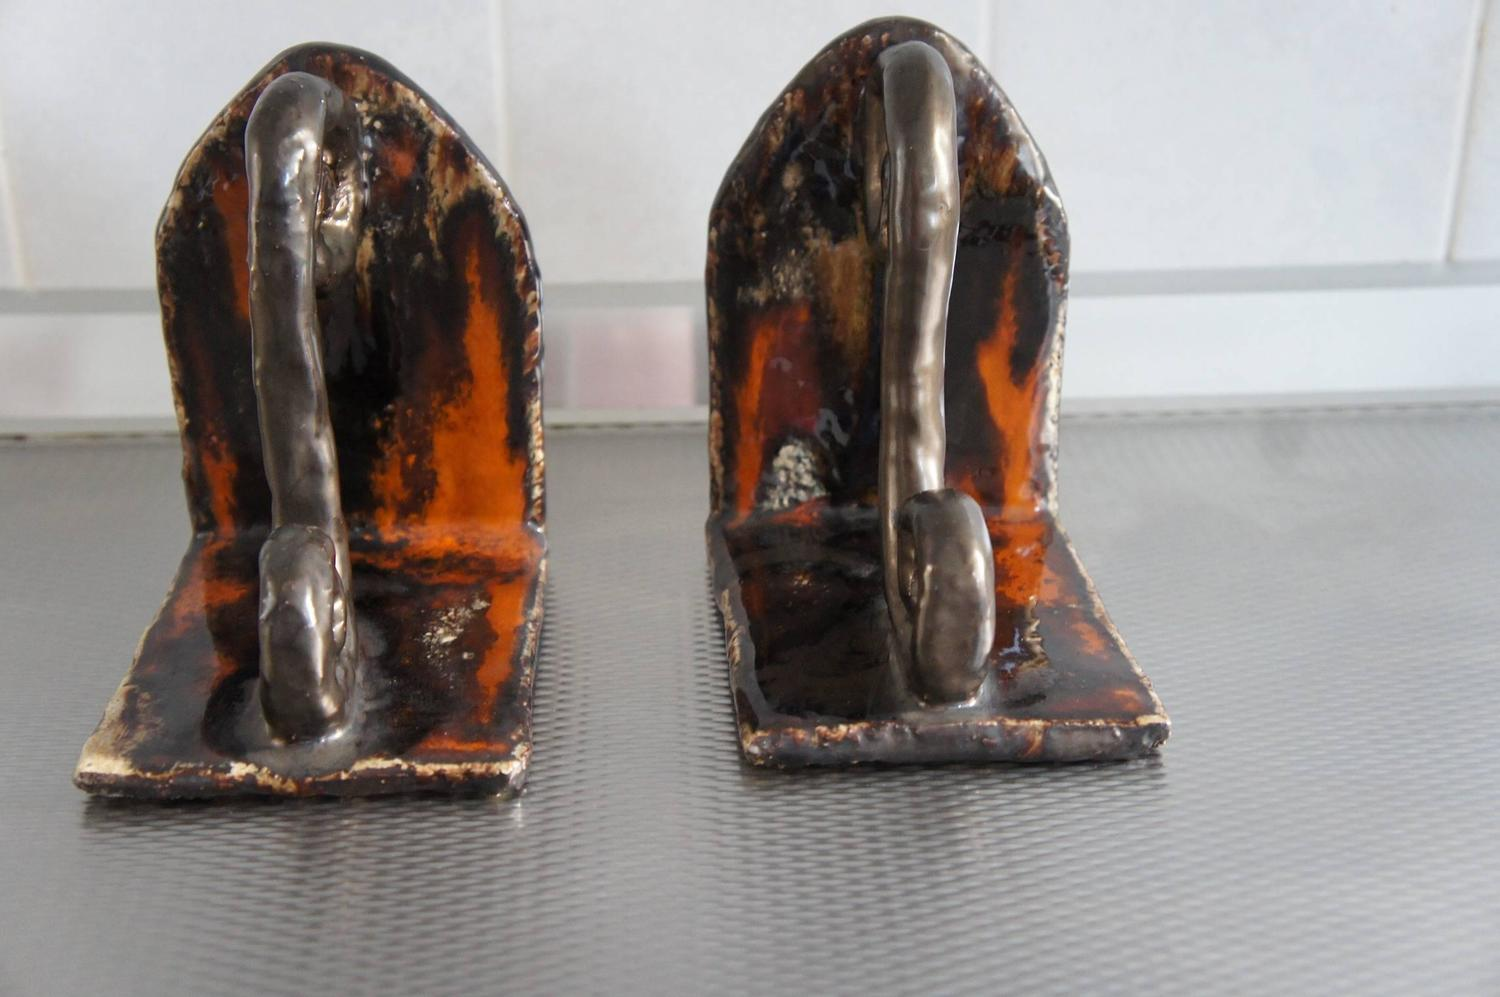 Vintage Design Studio Pottery Glazed Ceramic Bookends